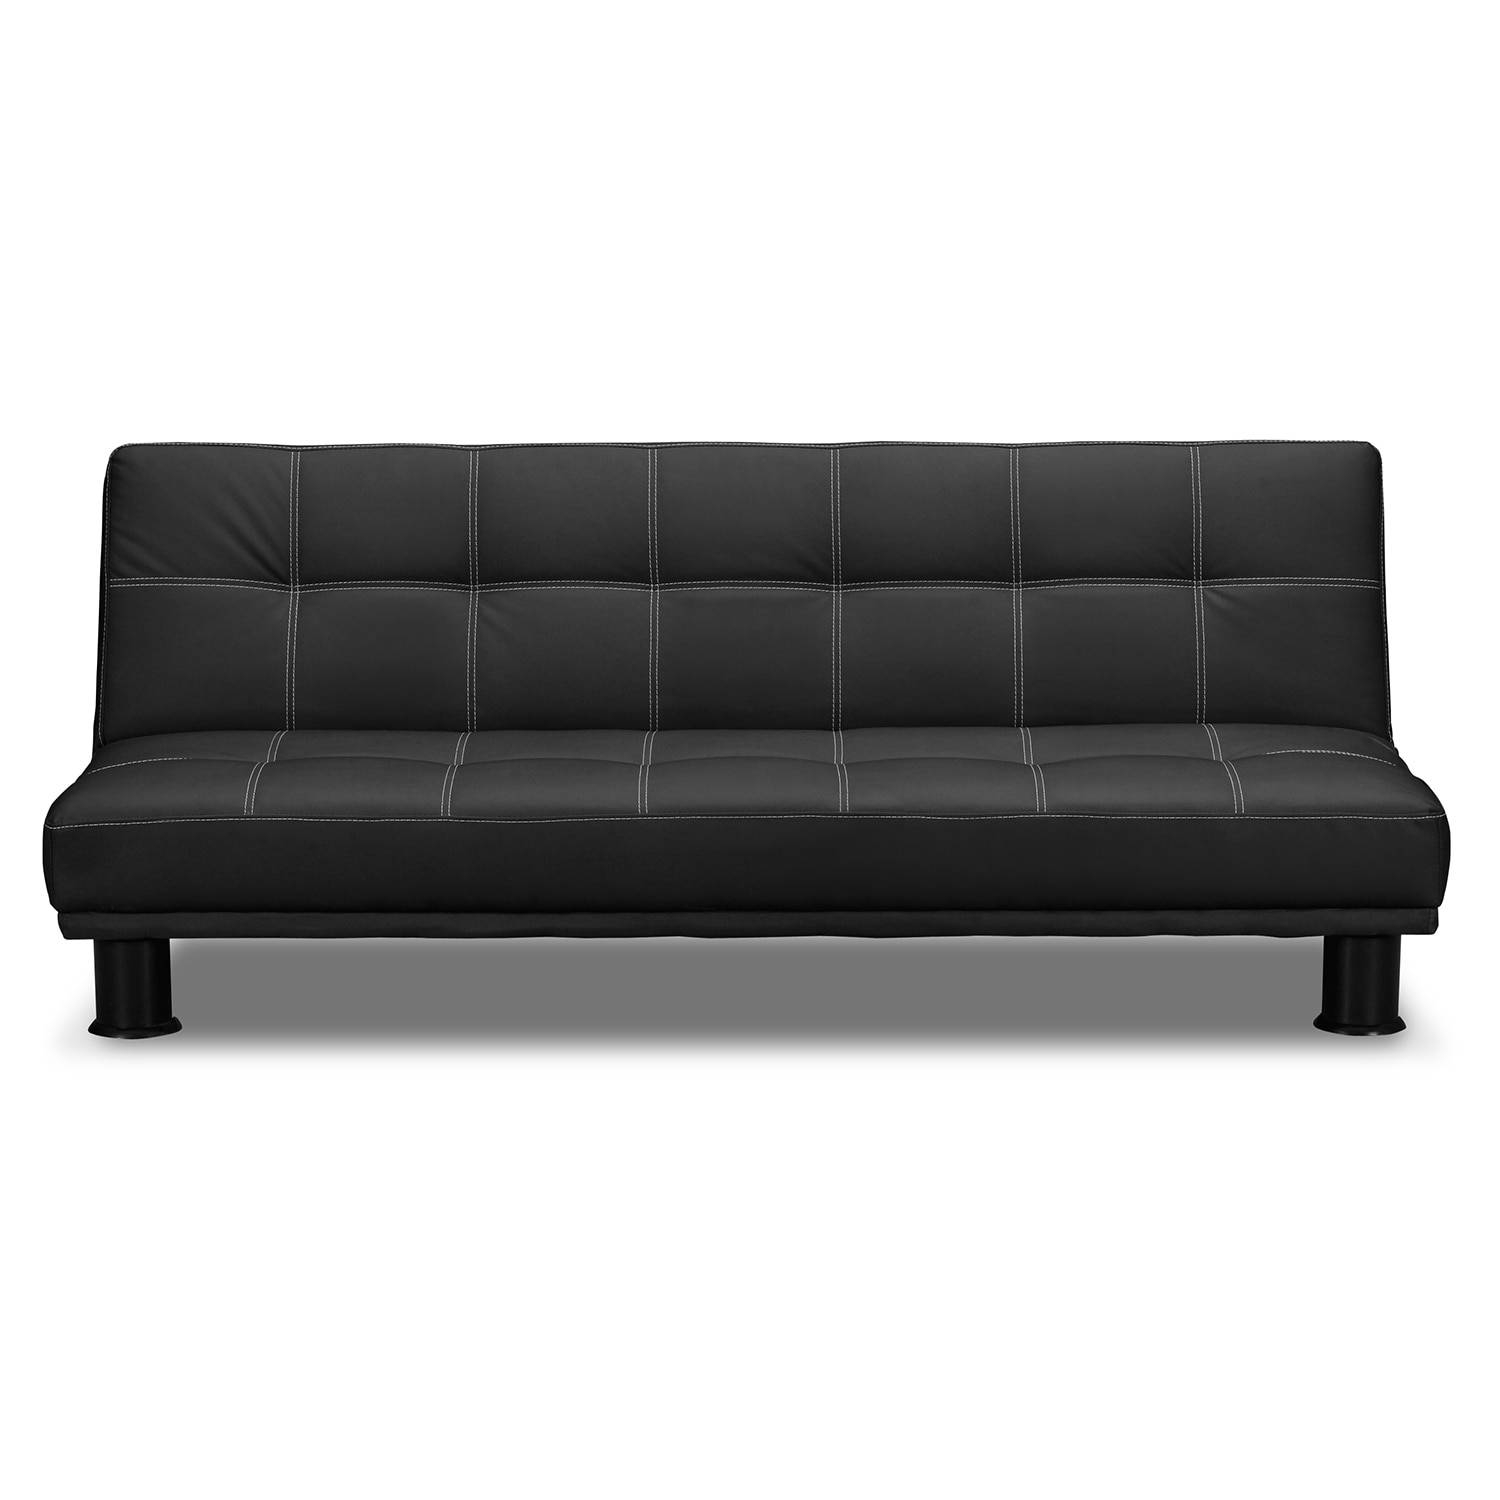 Phyllo Futon Sofa Bed - Black | American Signature Furniture throughout Leather Fouton Sofas (Image 13 of 15)